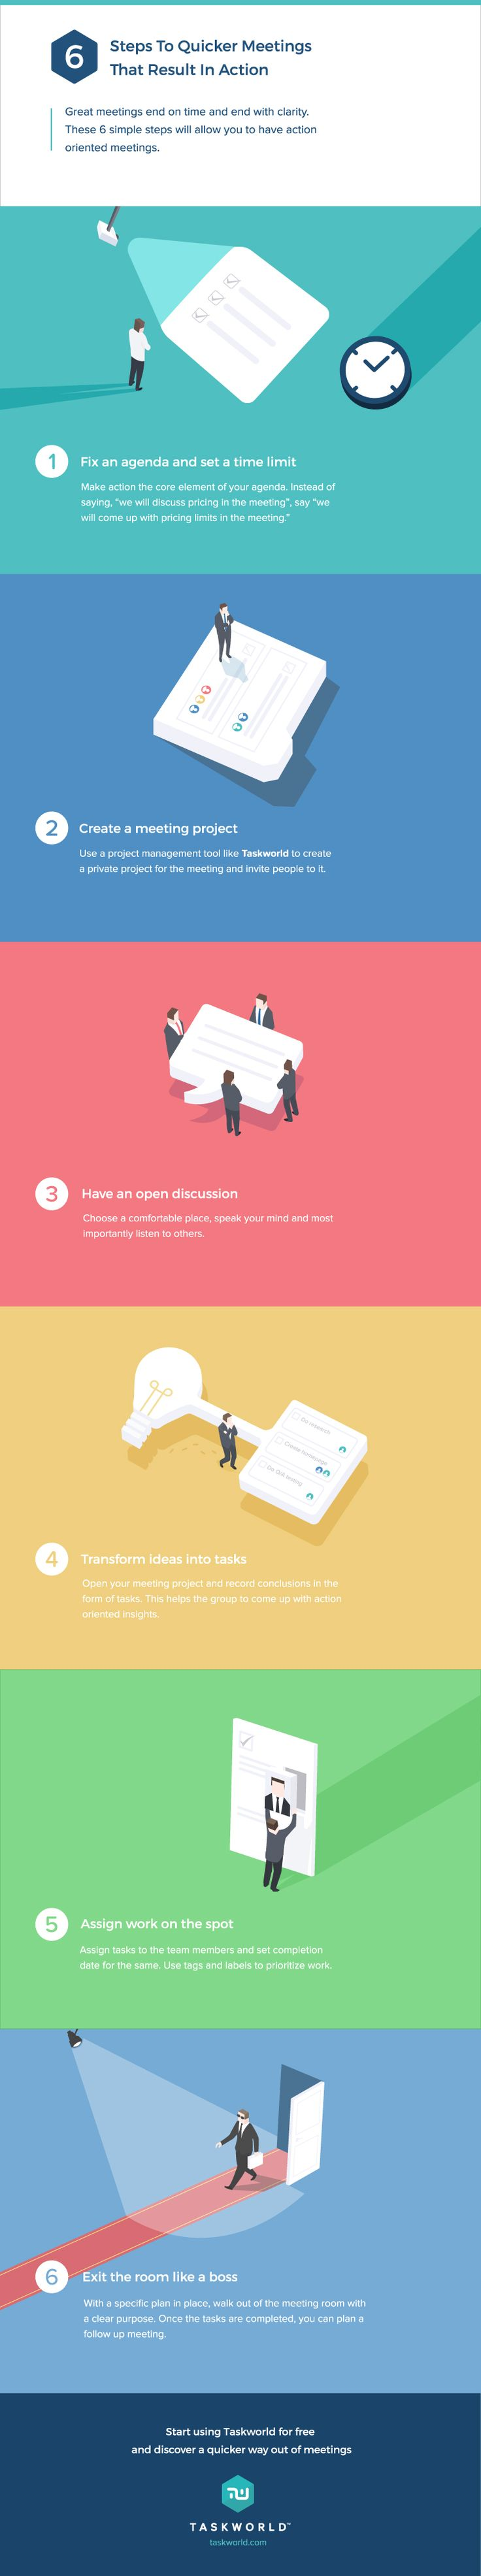 6 Steps to Quicker Meetings that Result in Action #Infographic #Meetings